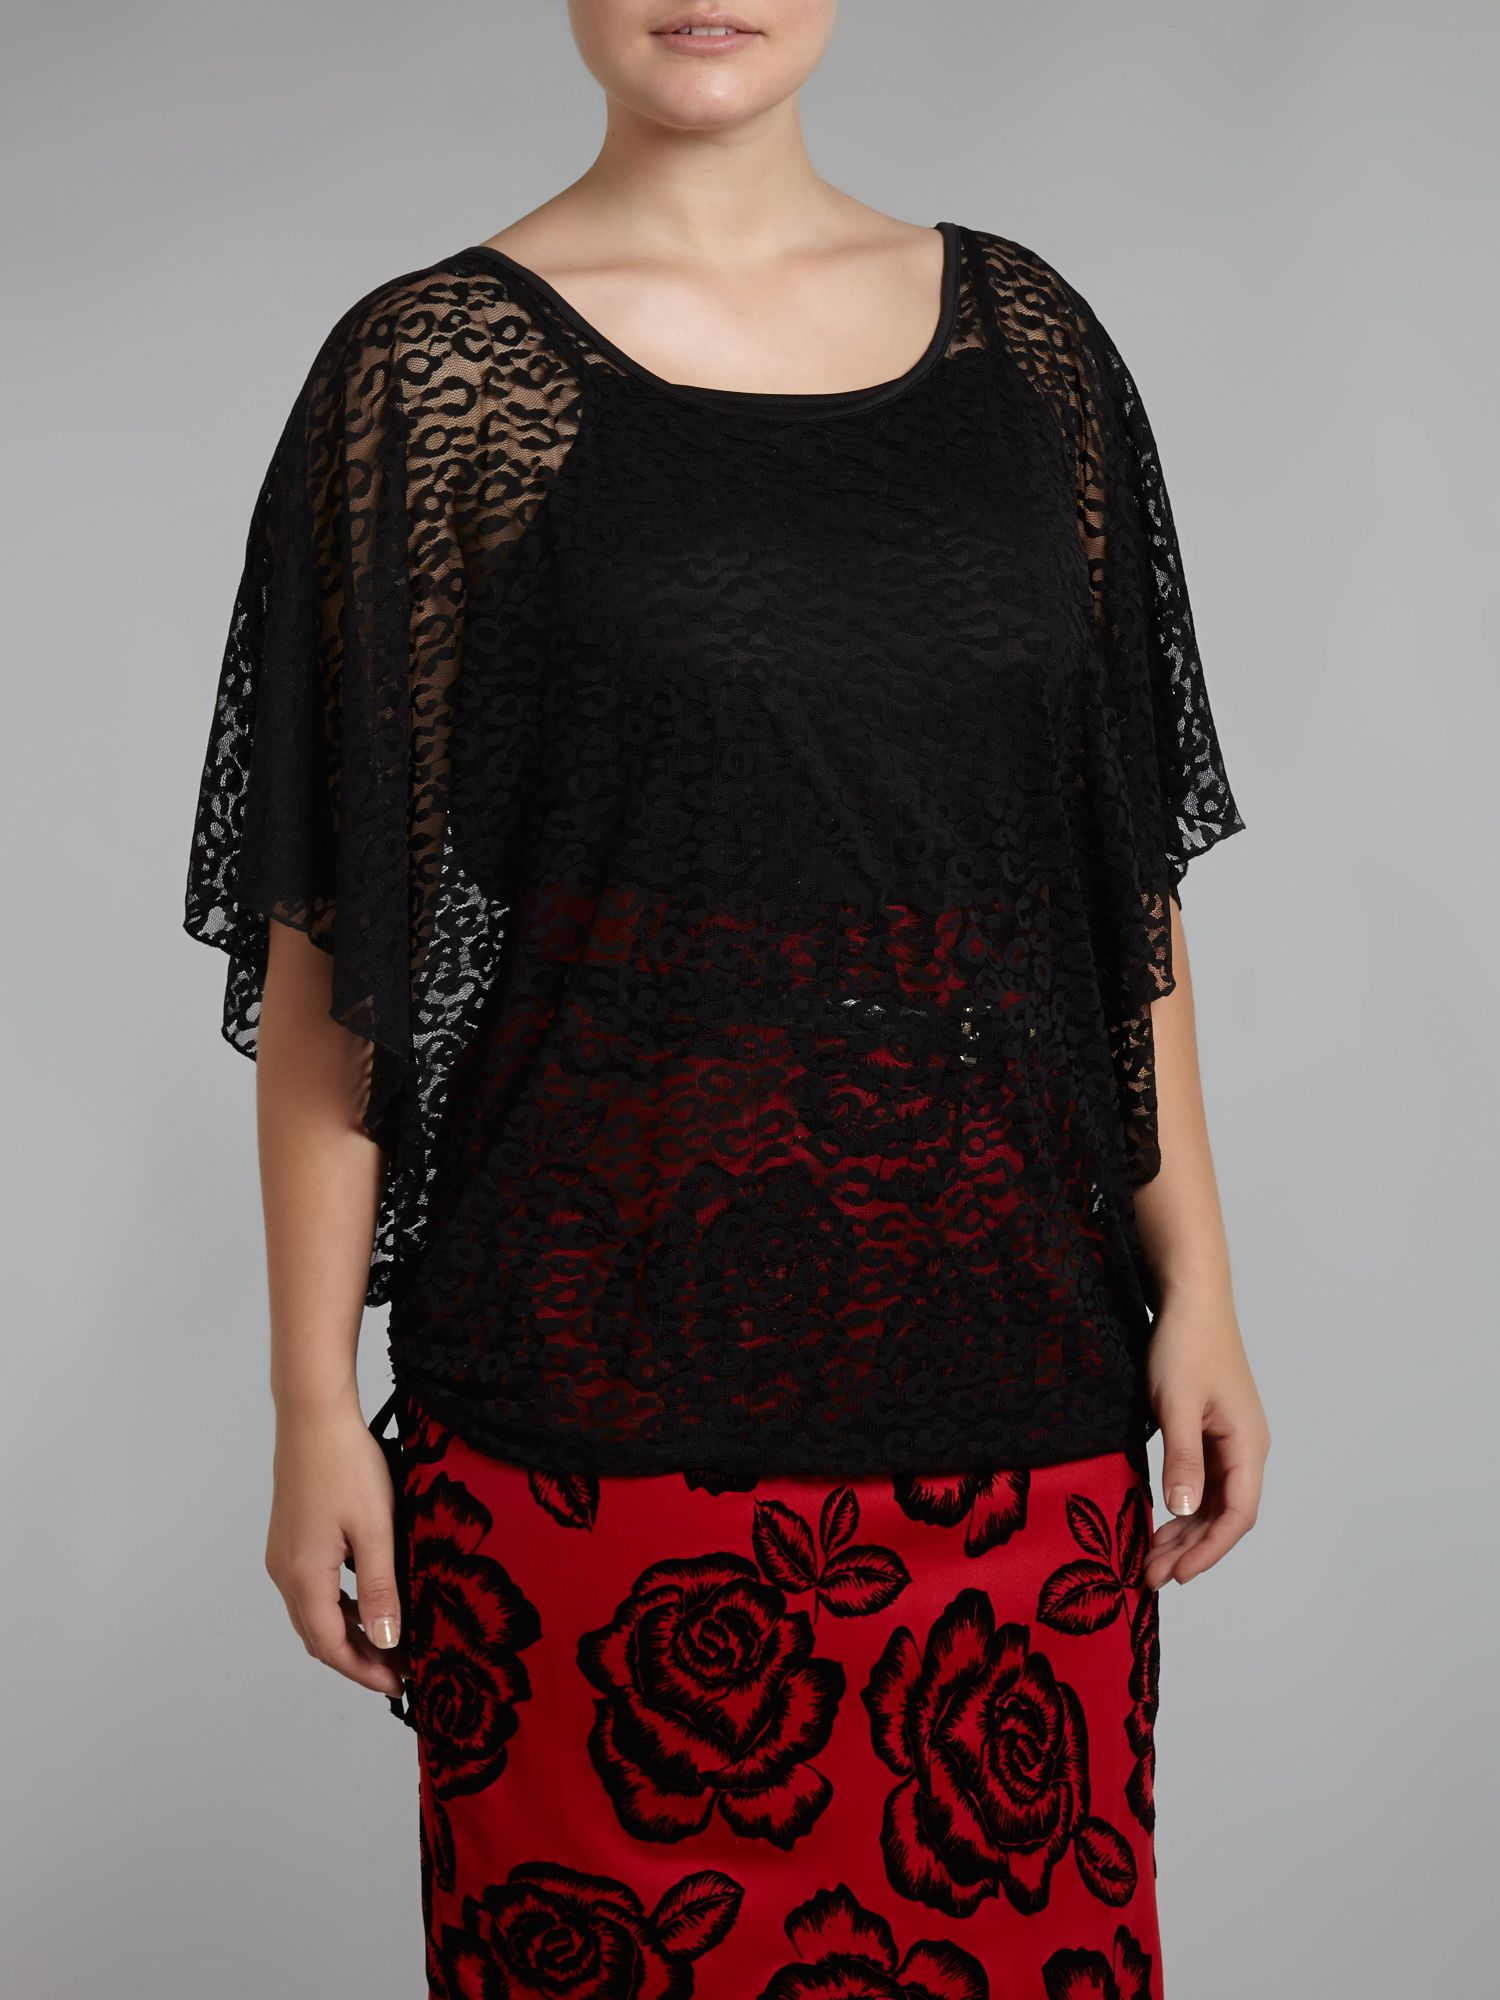 Animal print sheer batwing top